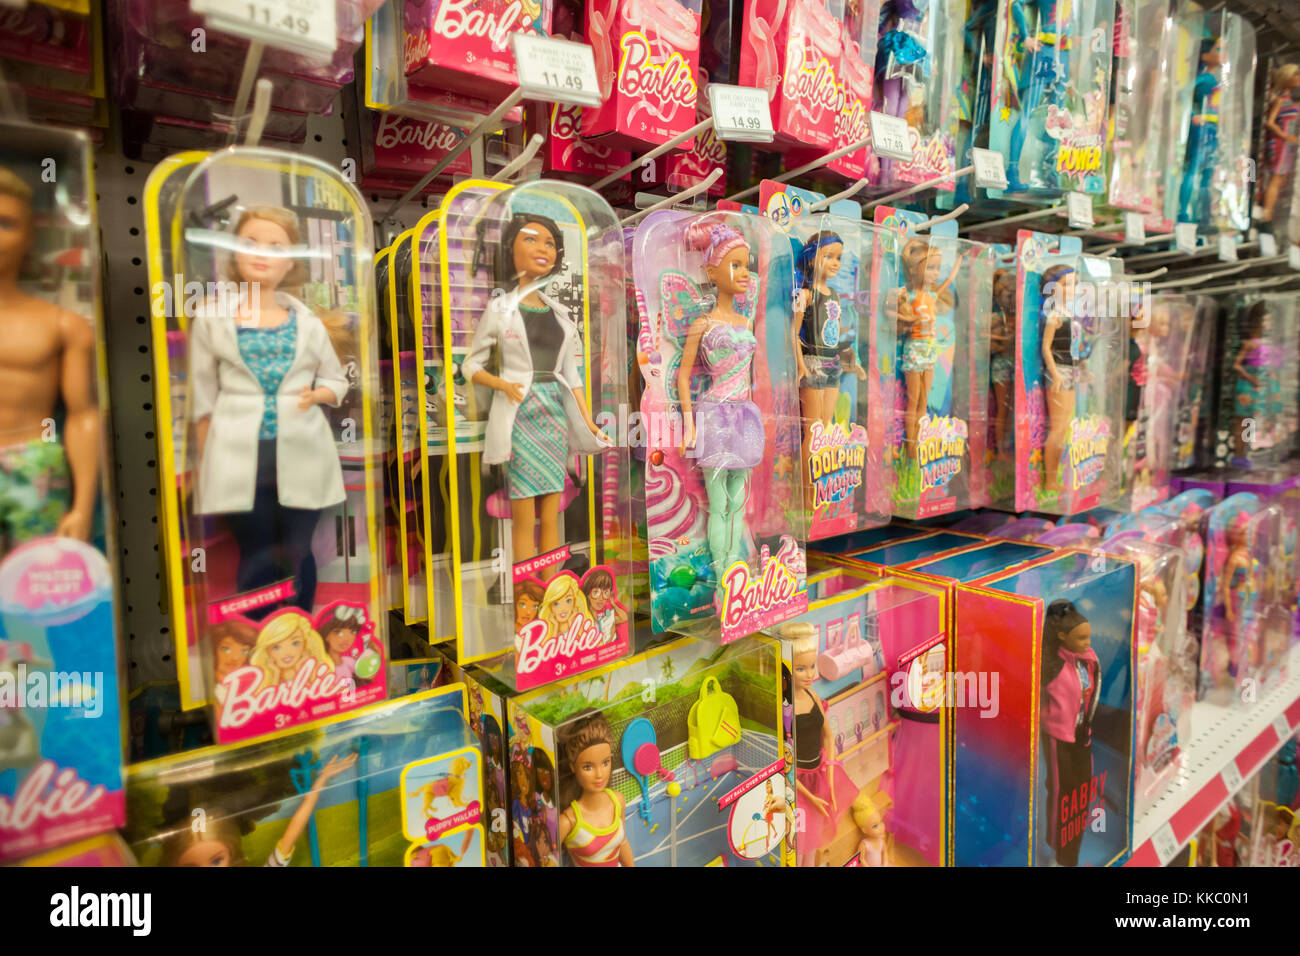 A selection of Mattel Barbie Dolls in the Toys R Us location in Times Square in New York on Sunday, November 26, Stock Photo